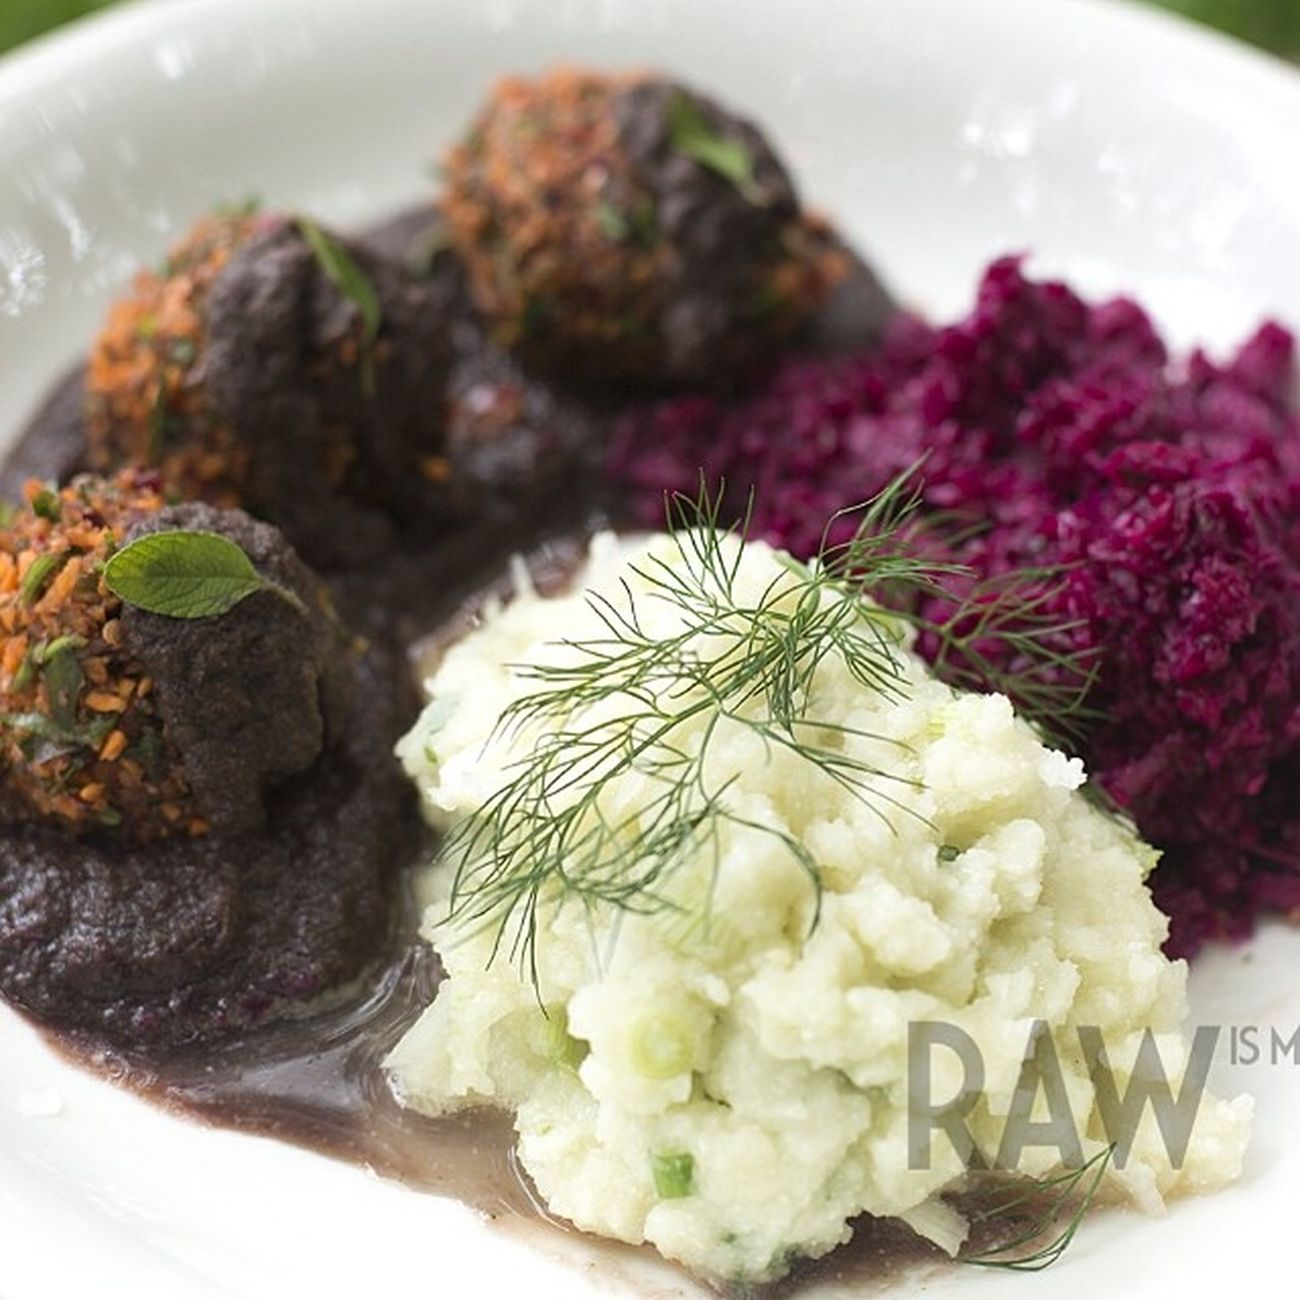 Rawvegan Sauerkraut mashed potatoes Frikadeller